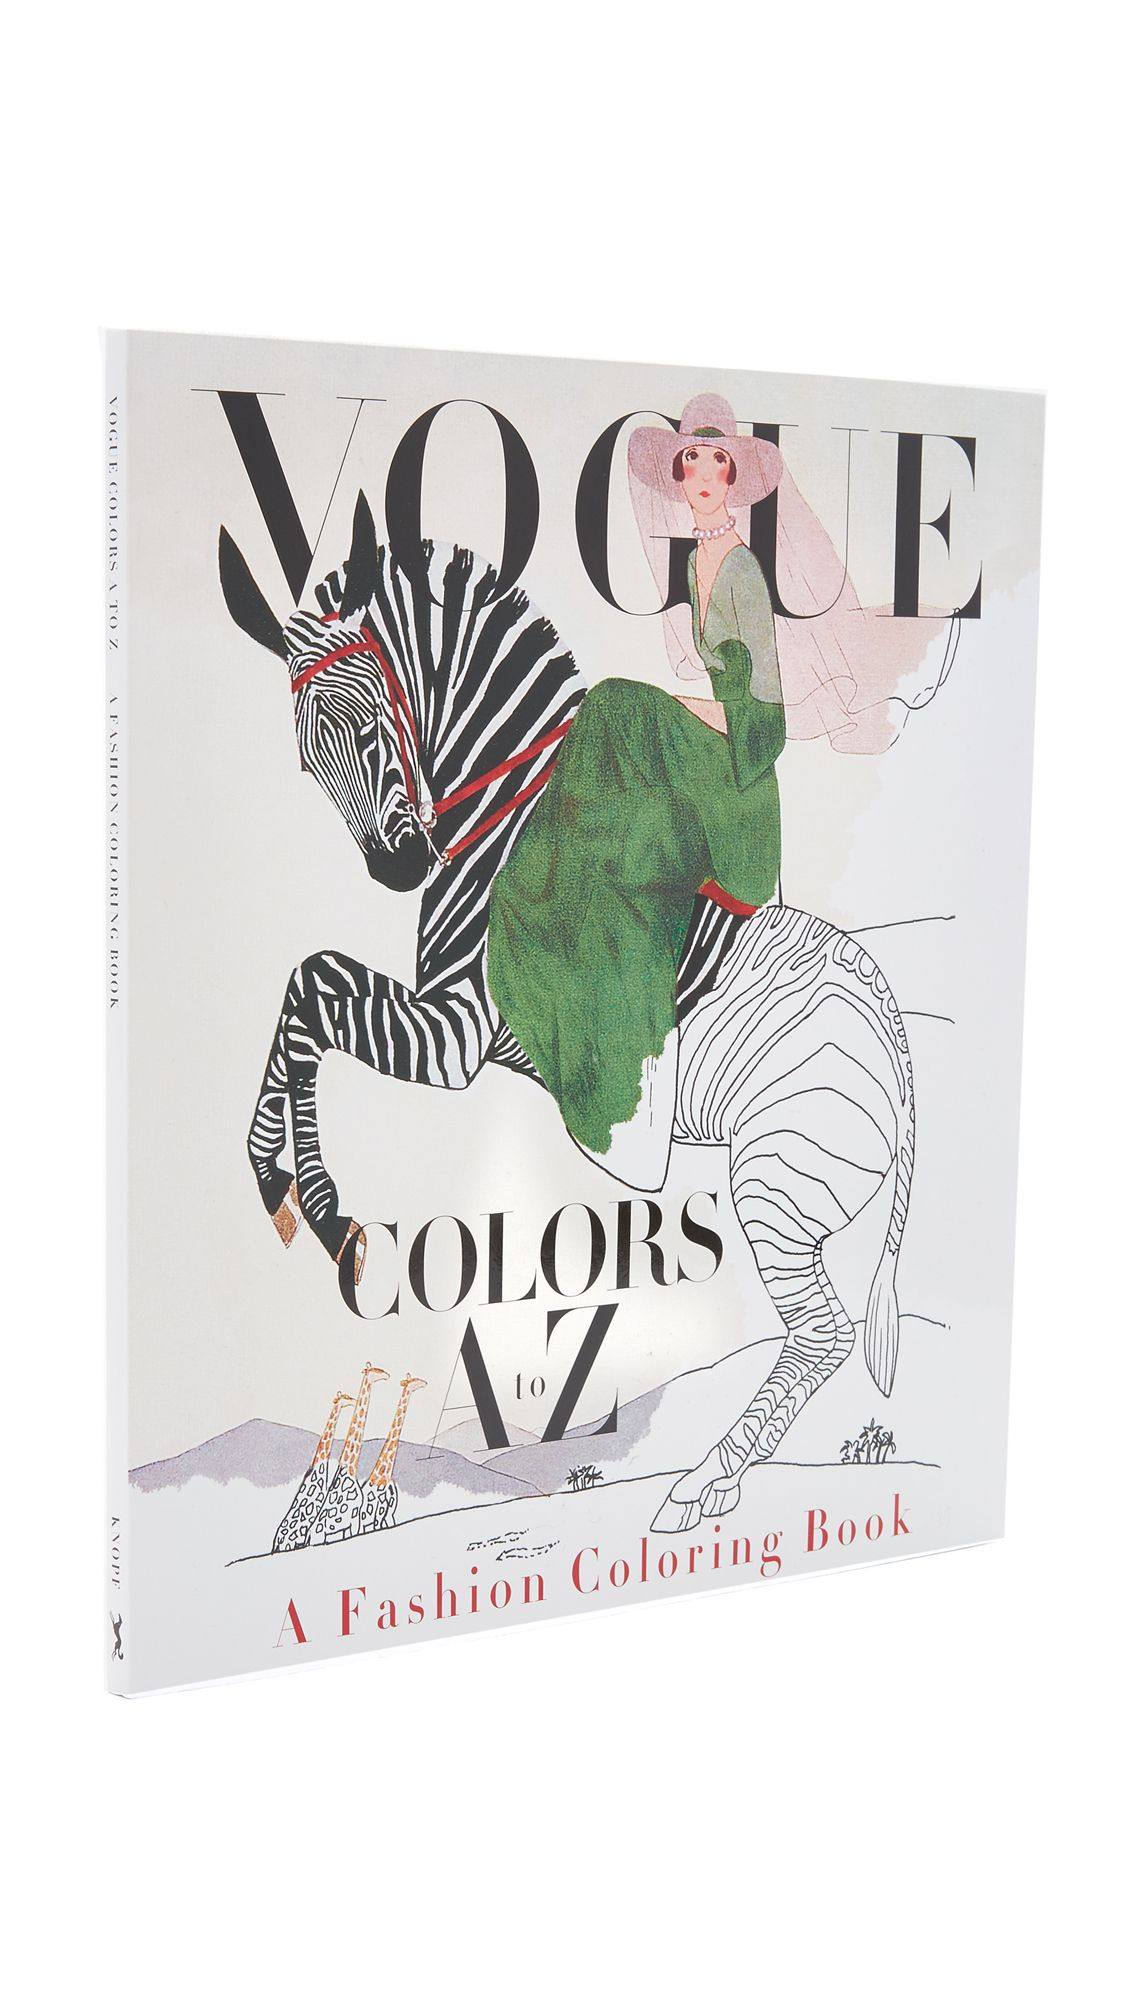 Vogue Colors A To Z Fashion Coloring Book Coloring Books Fashion Books